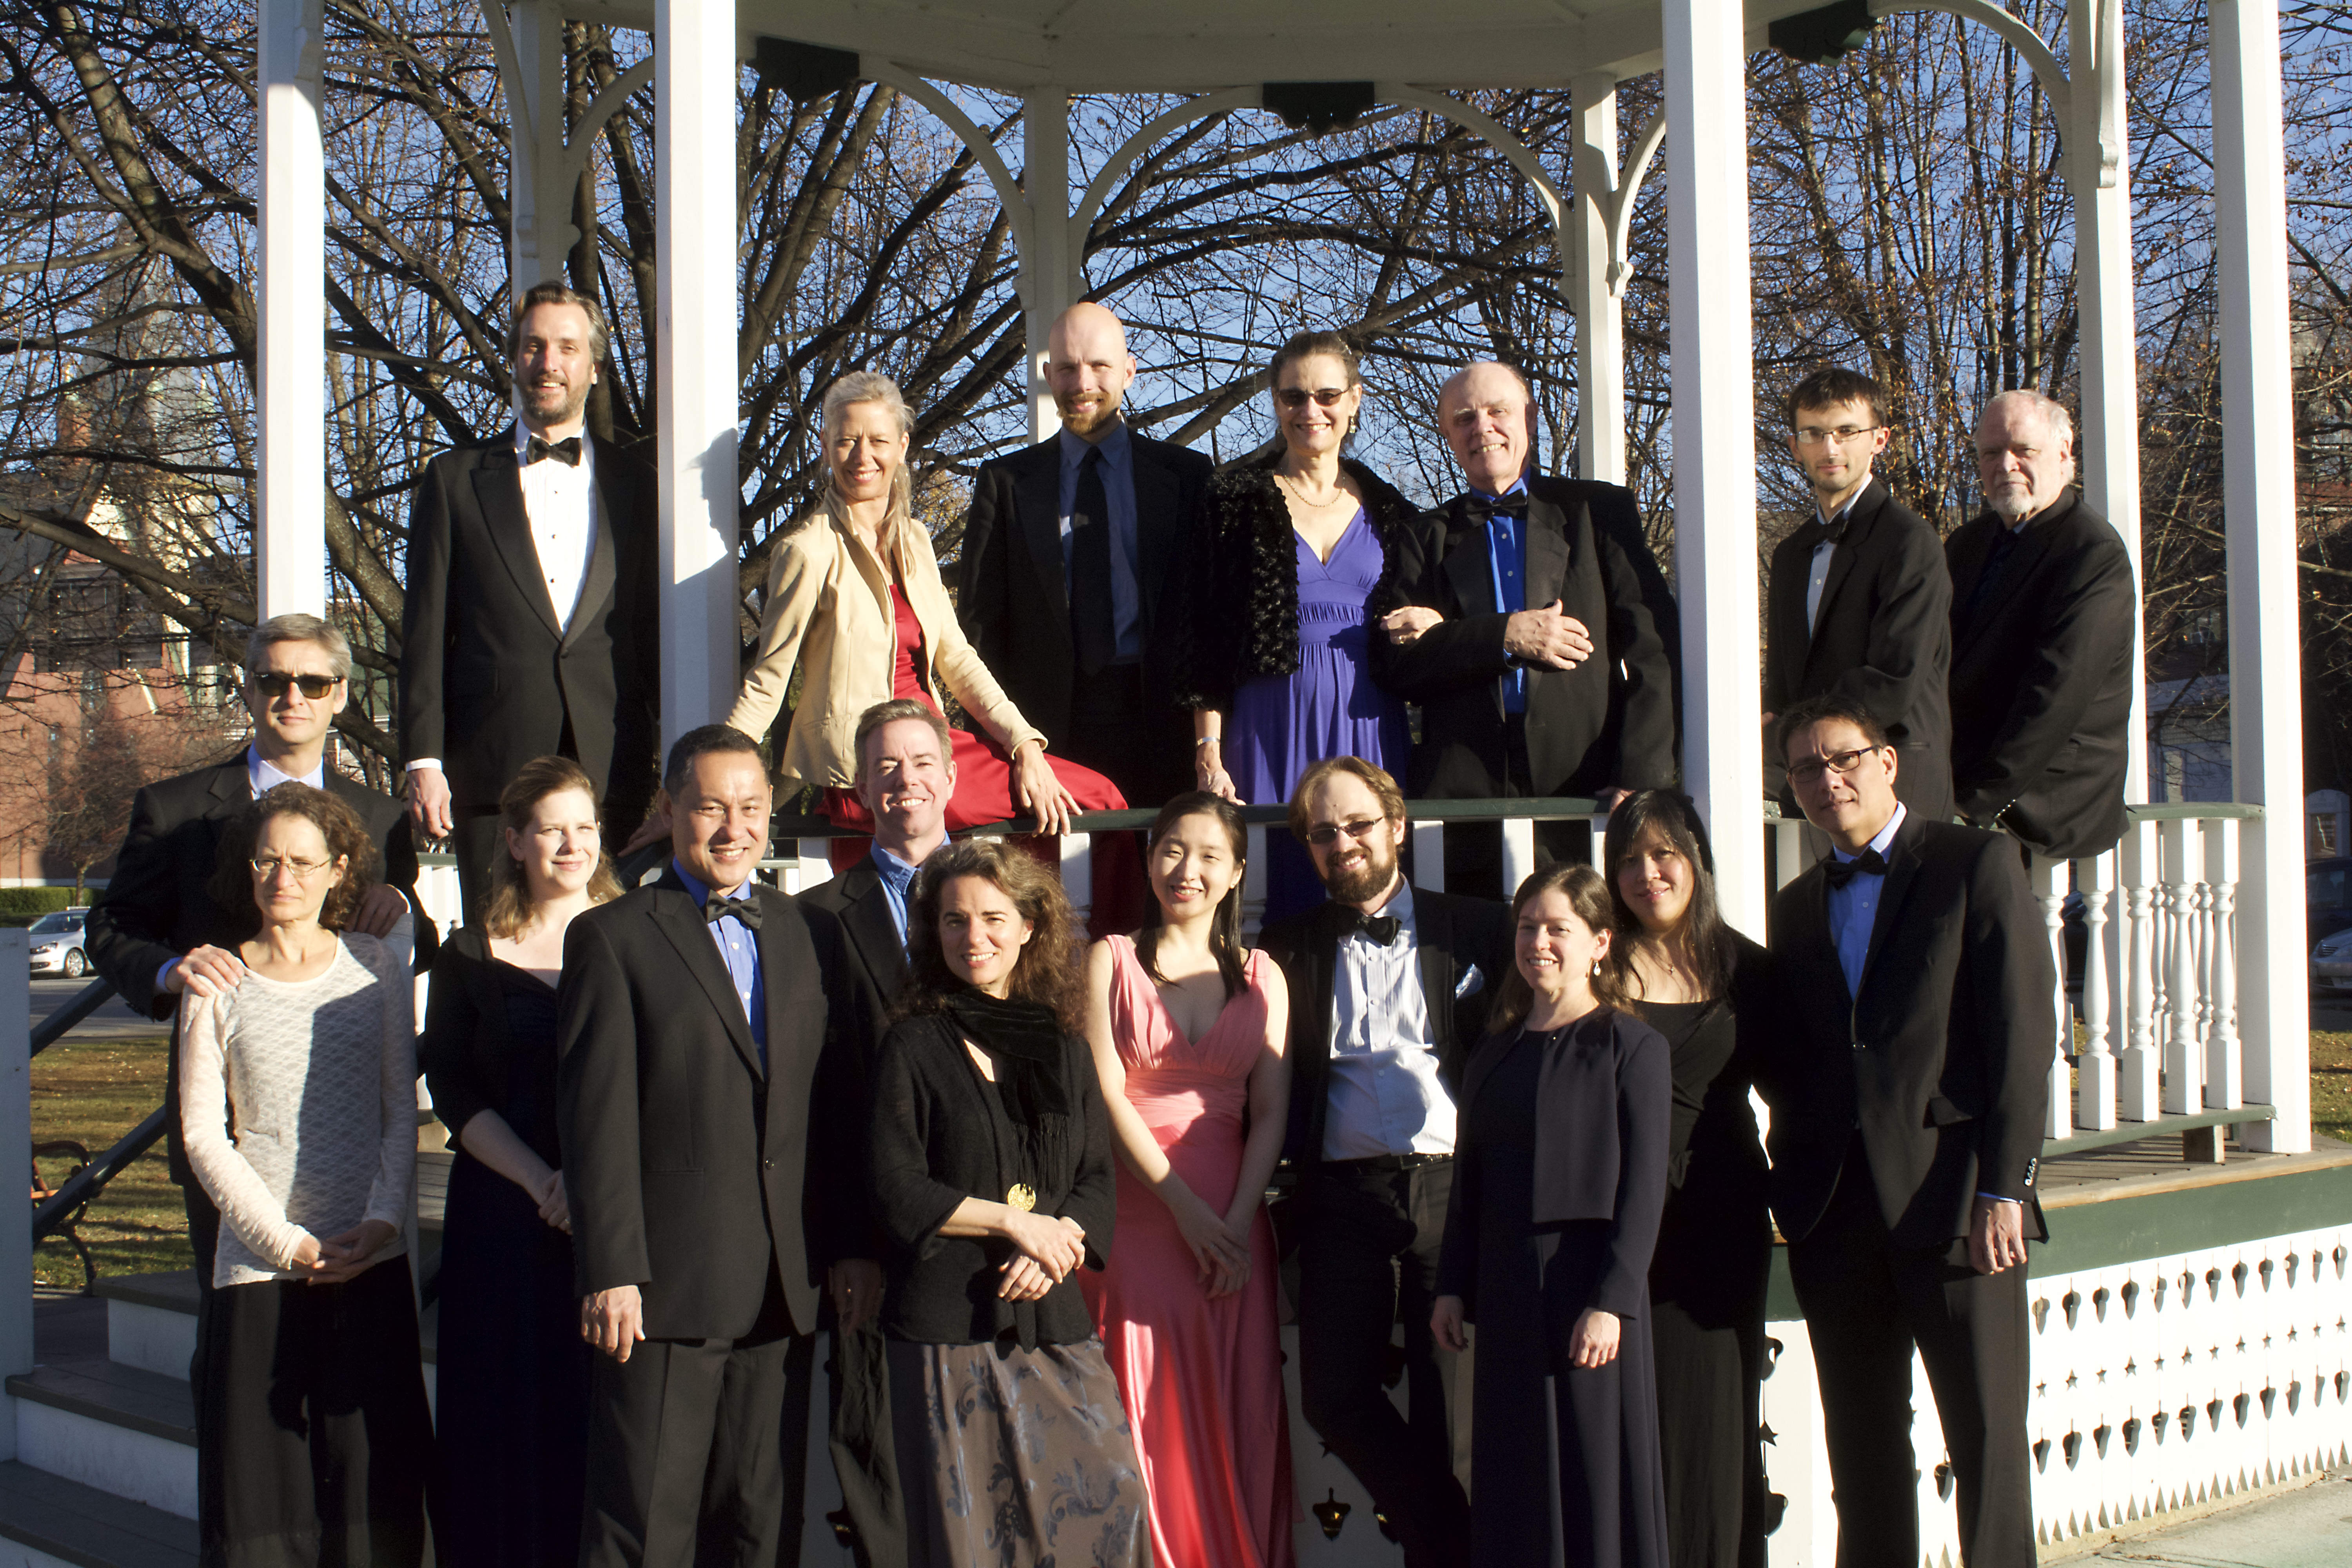 Members of the Eleva Chamber Players